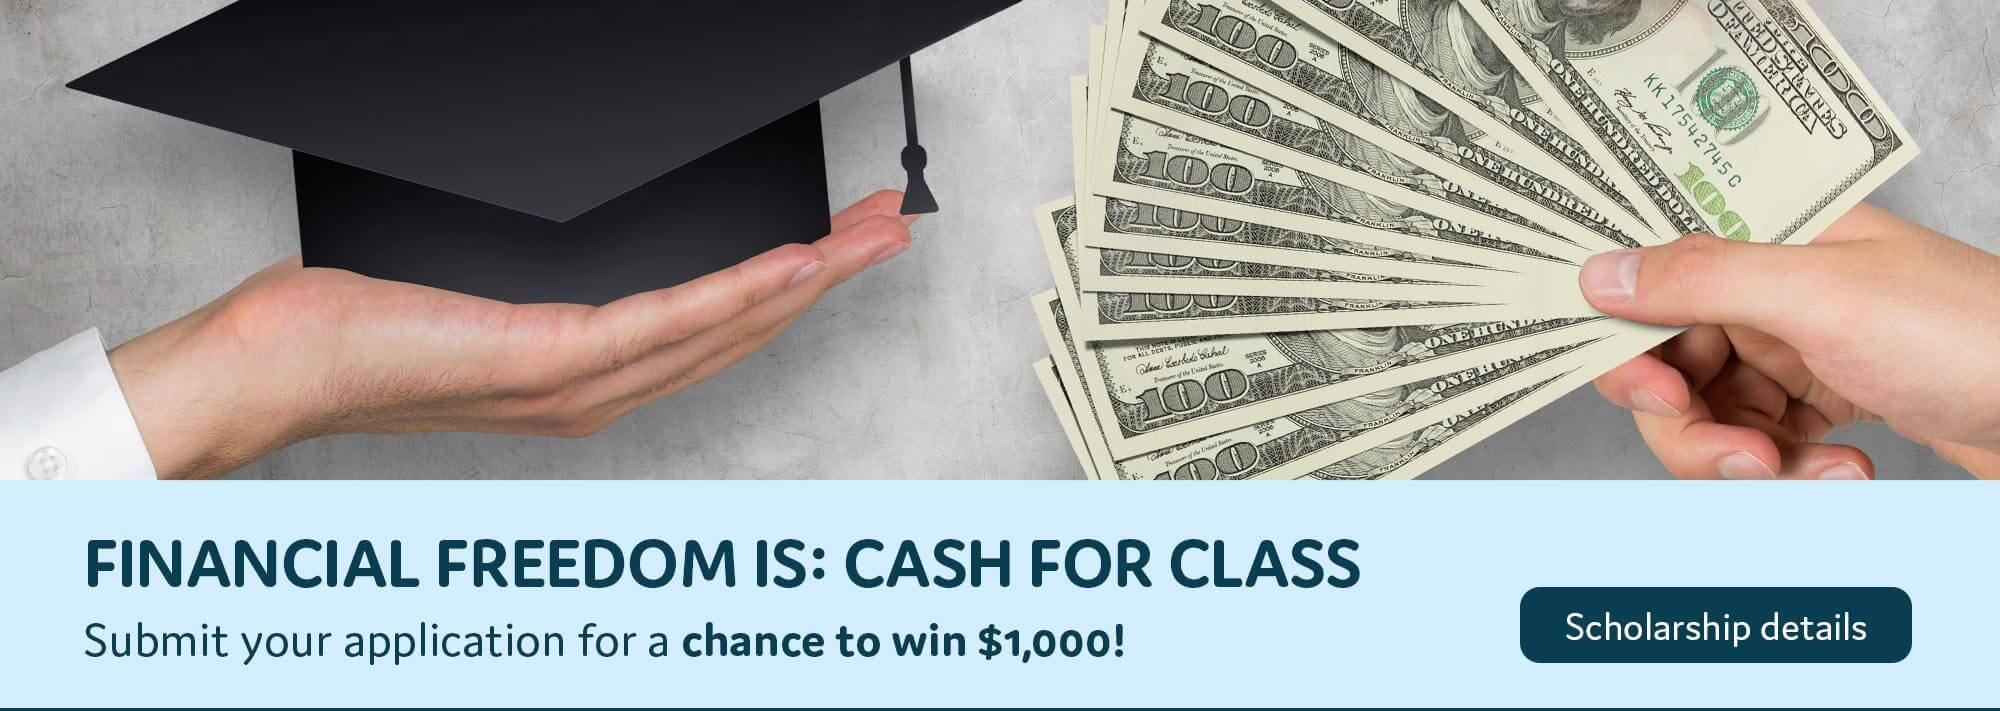 Financial Freedom is cash for class. Submit your scholarship application for a chance to win $1,000.